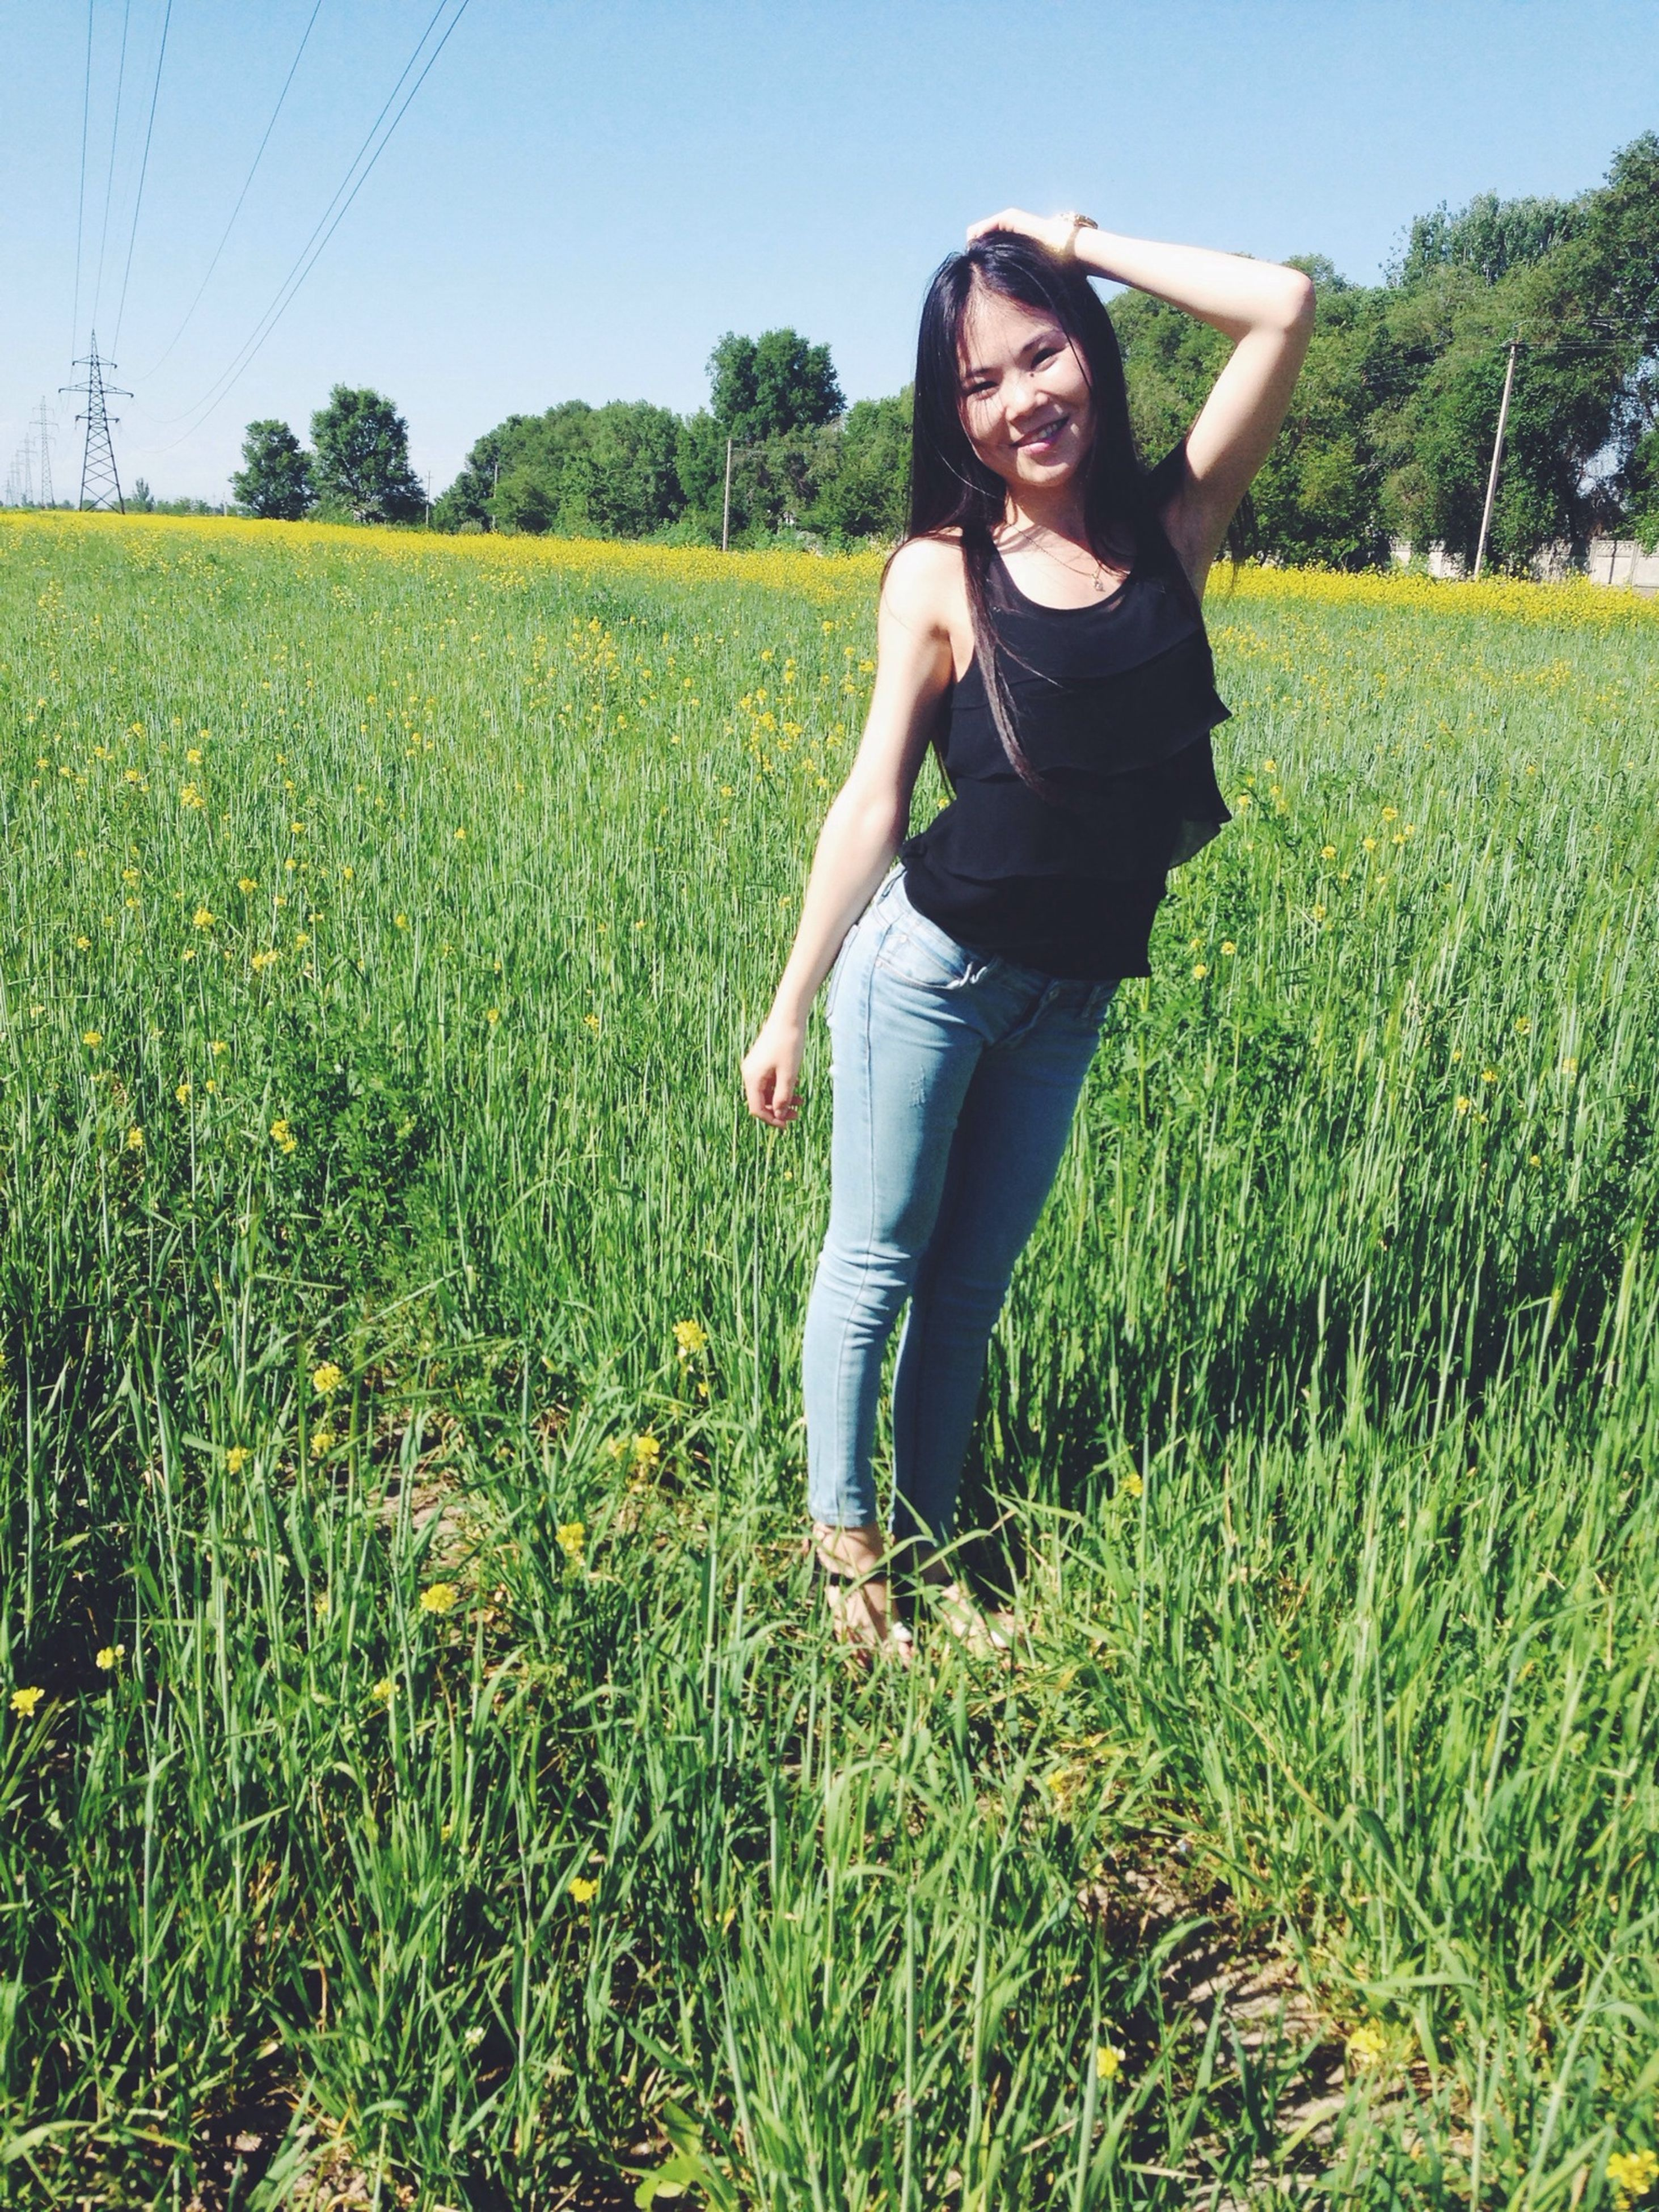 grass, young adult, person, lifestyles, field, casual clothing, leisure activity, young women, full length, standing, growth, green color, grassy, plant, tree, clear sky, nature, front view